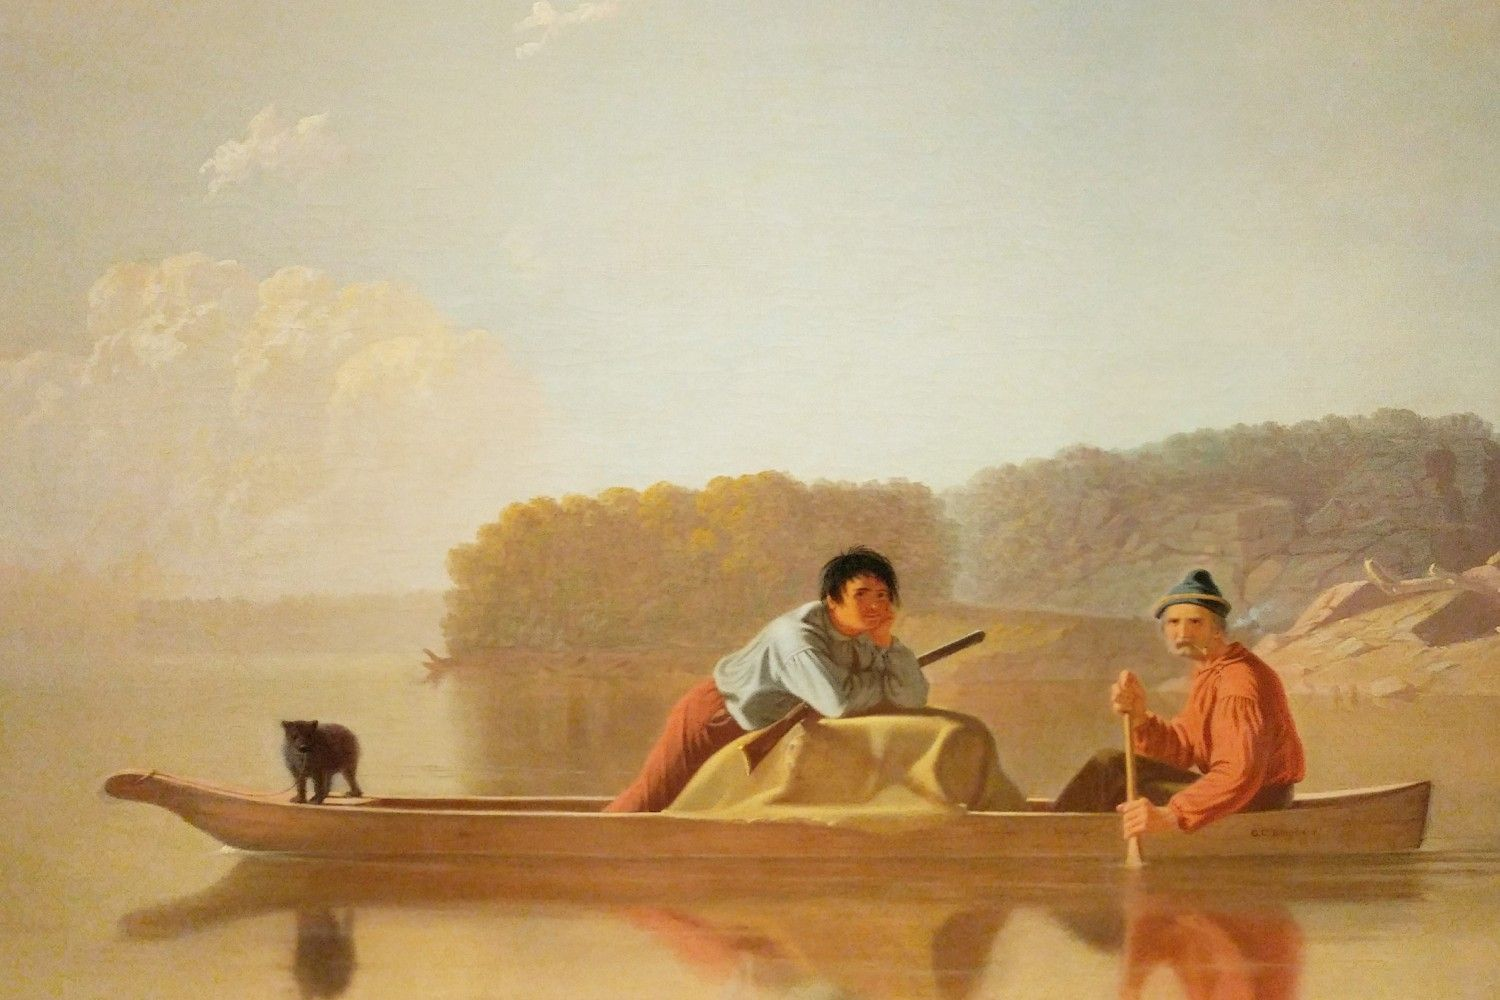 Painting on display at the Detroit Institute of Arts.